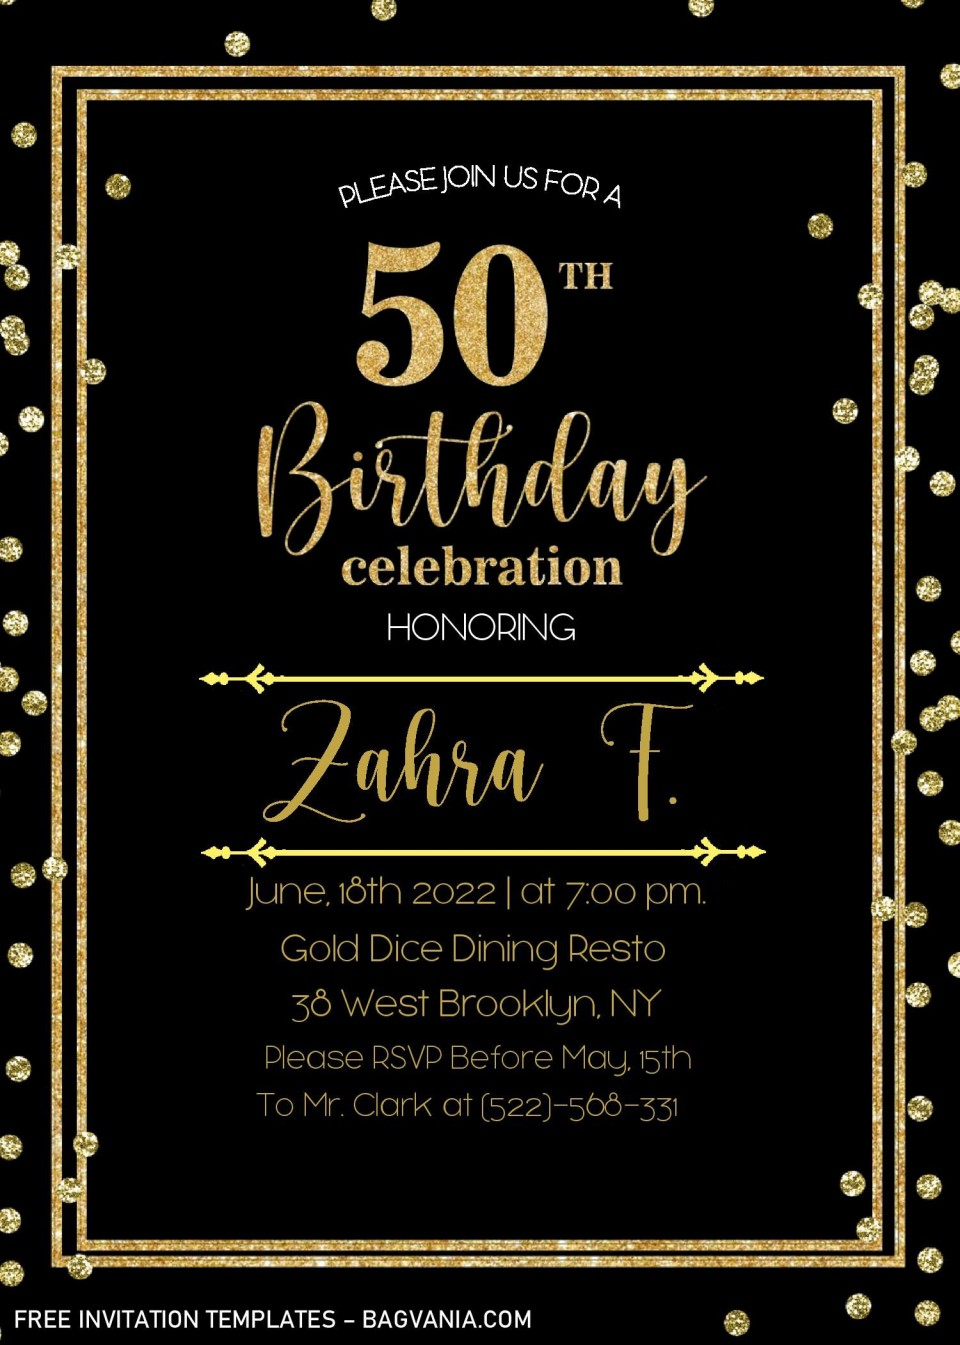 002 Striking Microsoft Word 50th Birthday Invitation Template Image  Editable Wedding Anniversary960